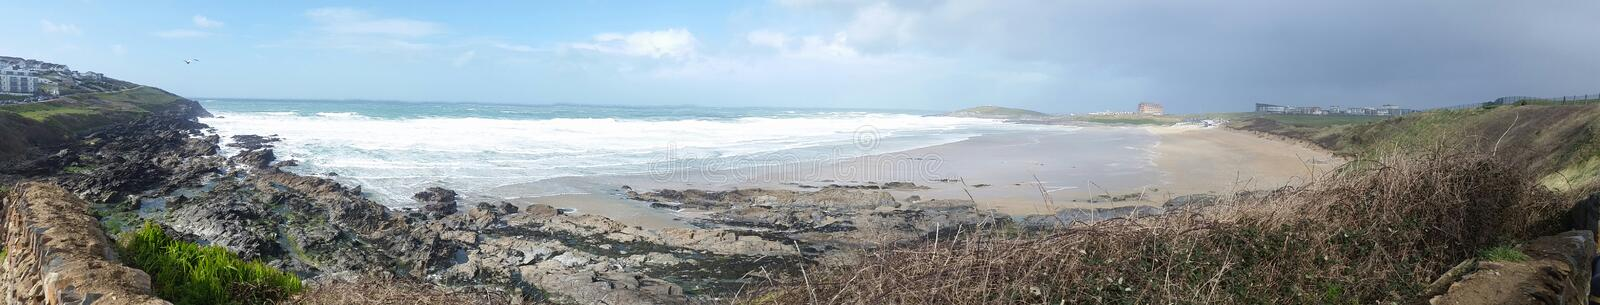 Fistral beach . Newquay. Cornwall. A Panoramic image of fistral beach on the north cornwall coast royalty free stock photo